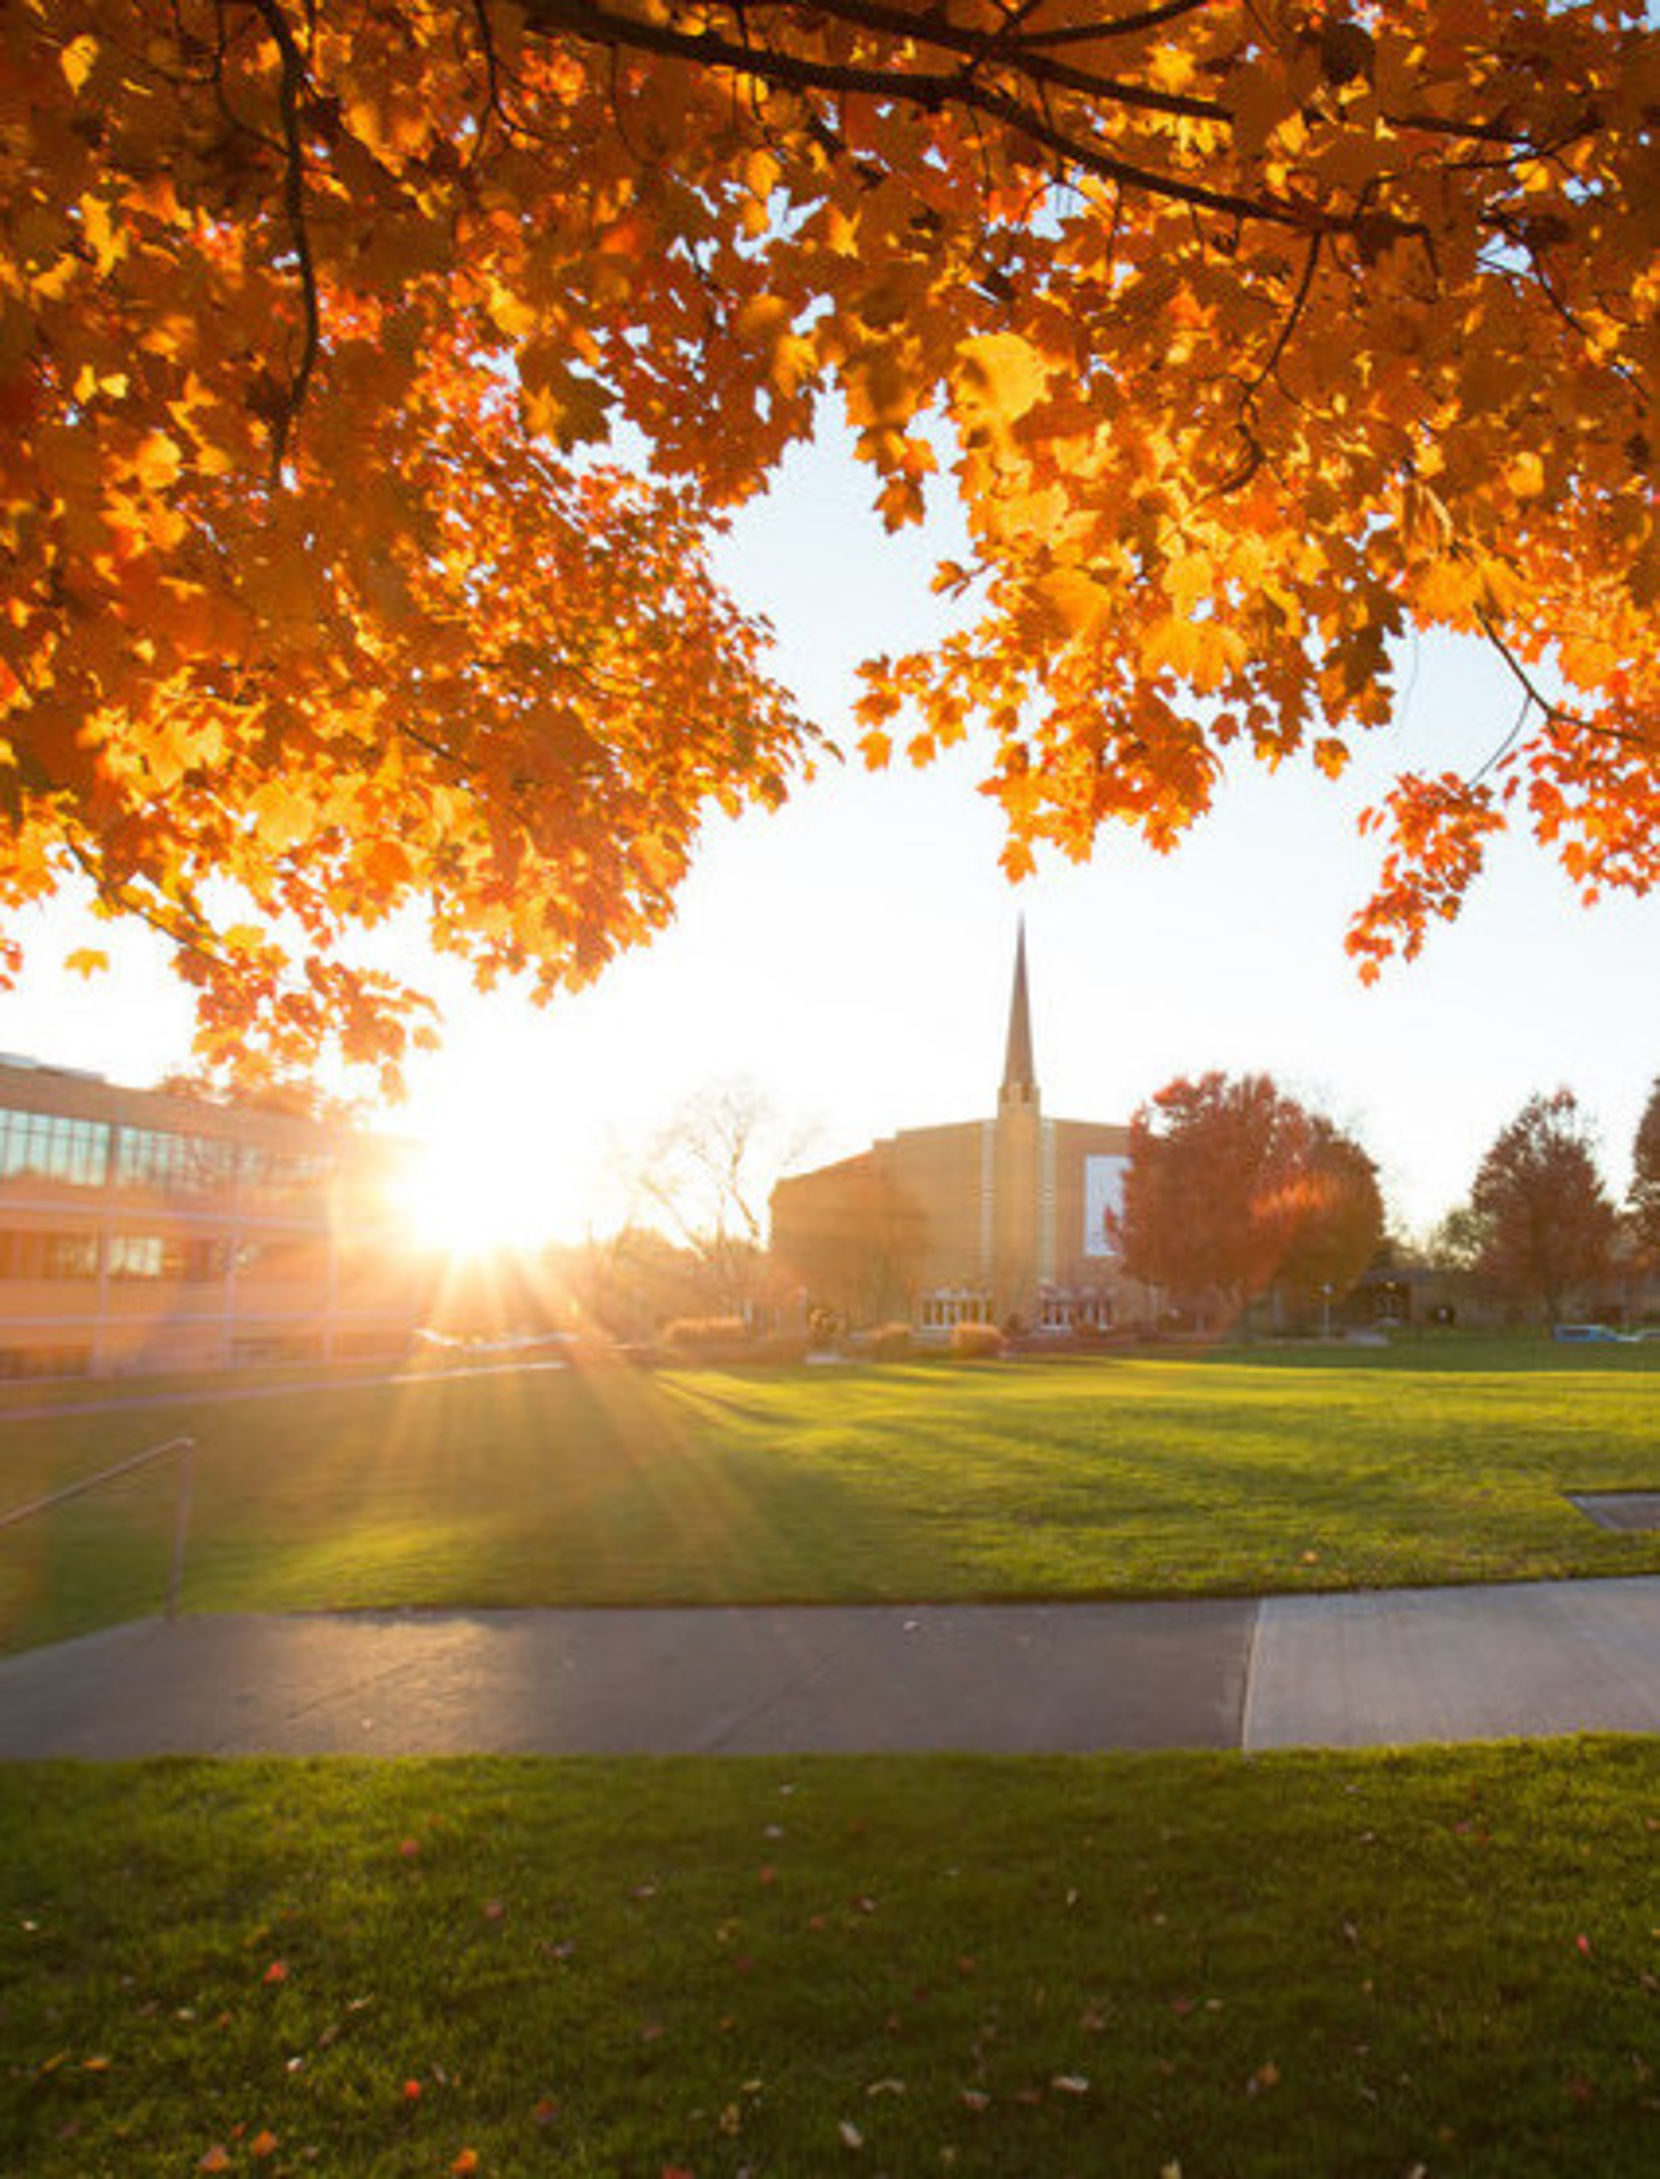 The sun shines through fall leaves on a tree with the University Church in the background.